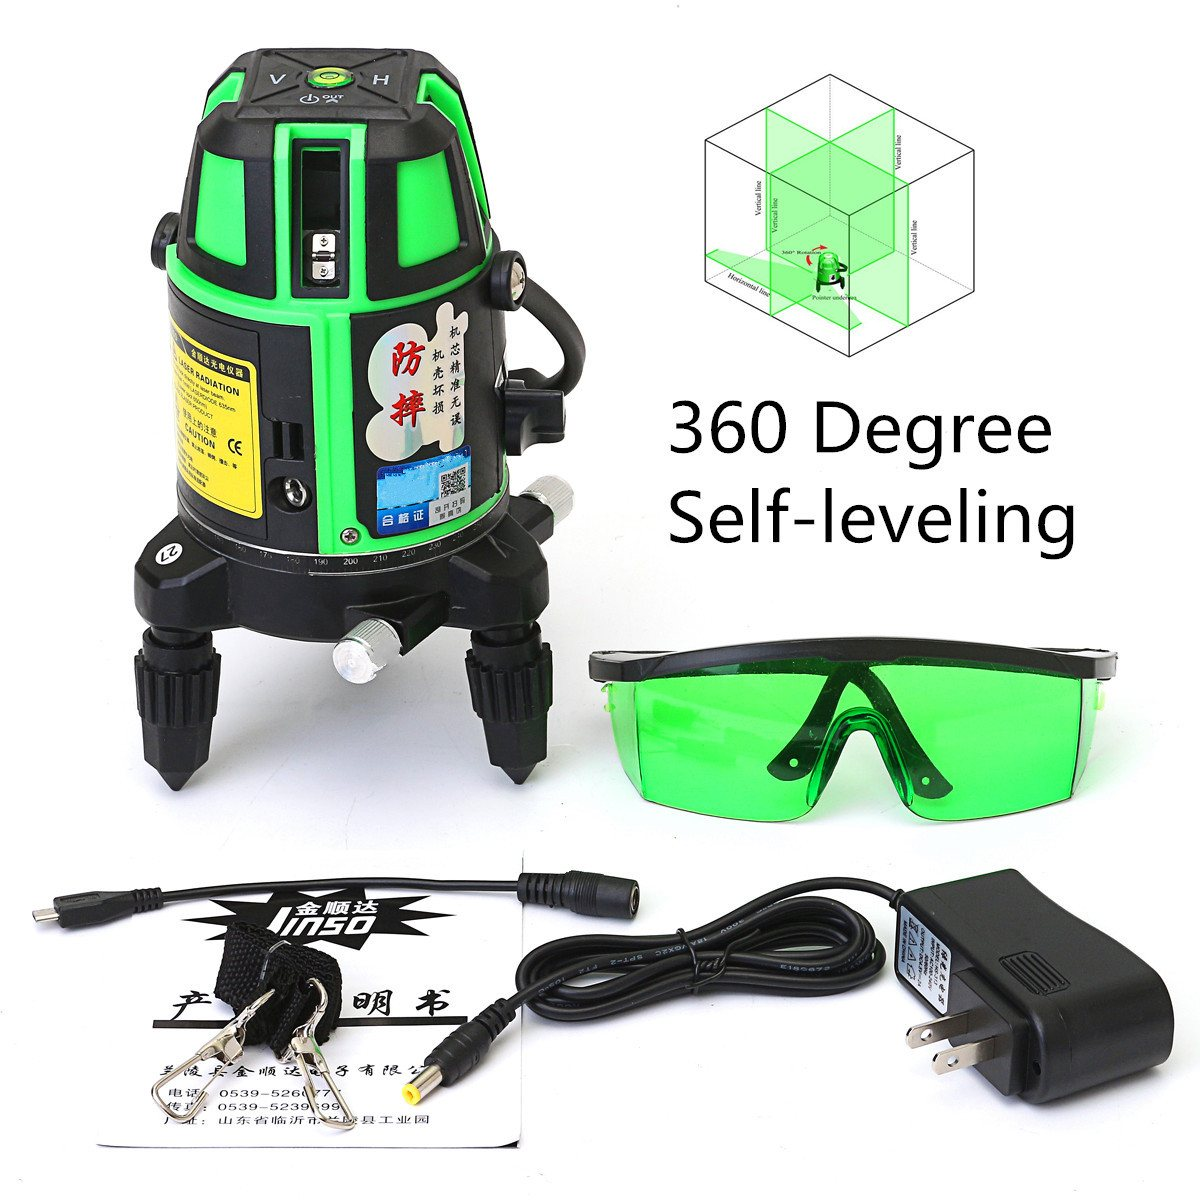 5 Lines 6 Points Green Laser Level 4V 1H 360 Rotary Self Leveling Outdoor Tools Tilt Function quality mtian level laser 5 lines 6 points instrument levels 360 self rotary 635nm corss line lazer level tools fast delivery